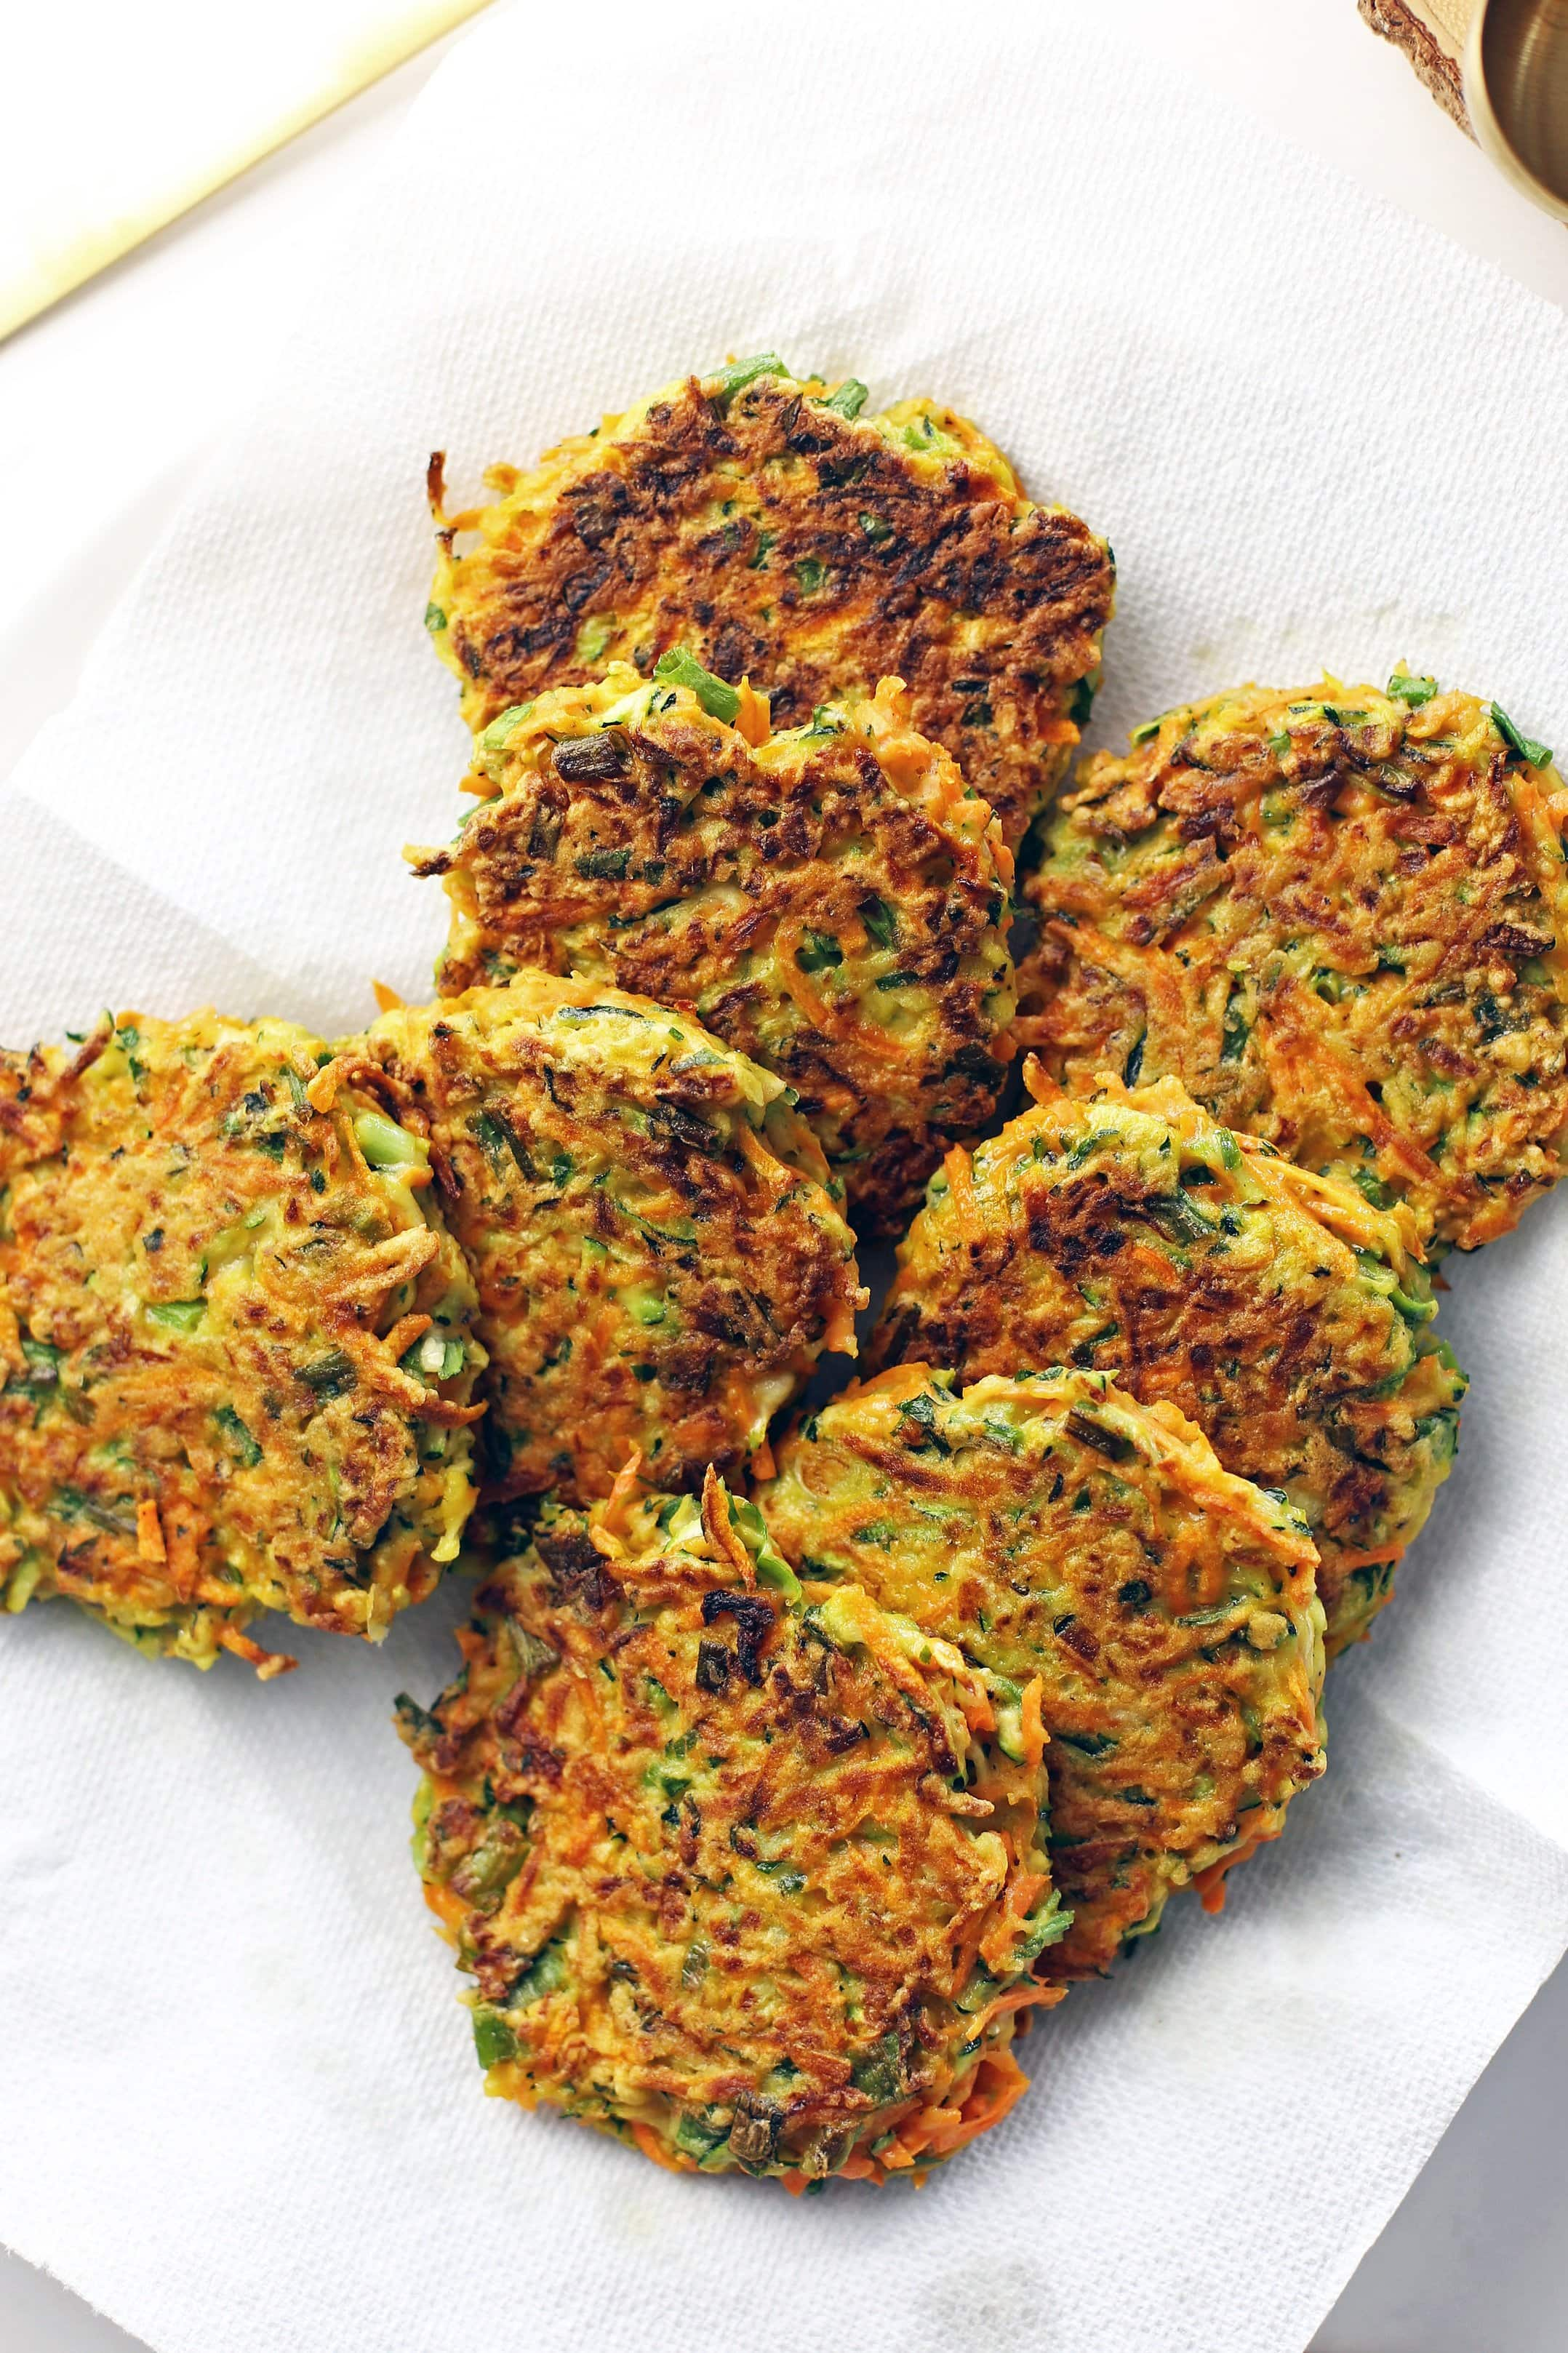 Eight freshly fried zucchini carrot pancakes placed on a paper towel lined plate.